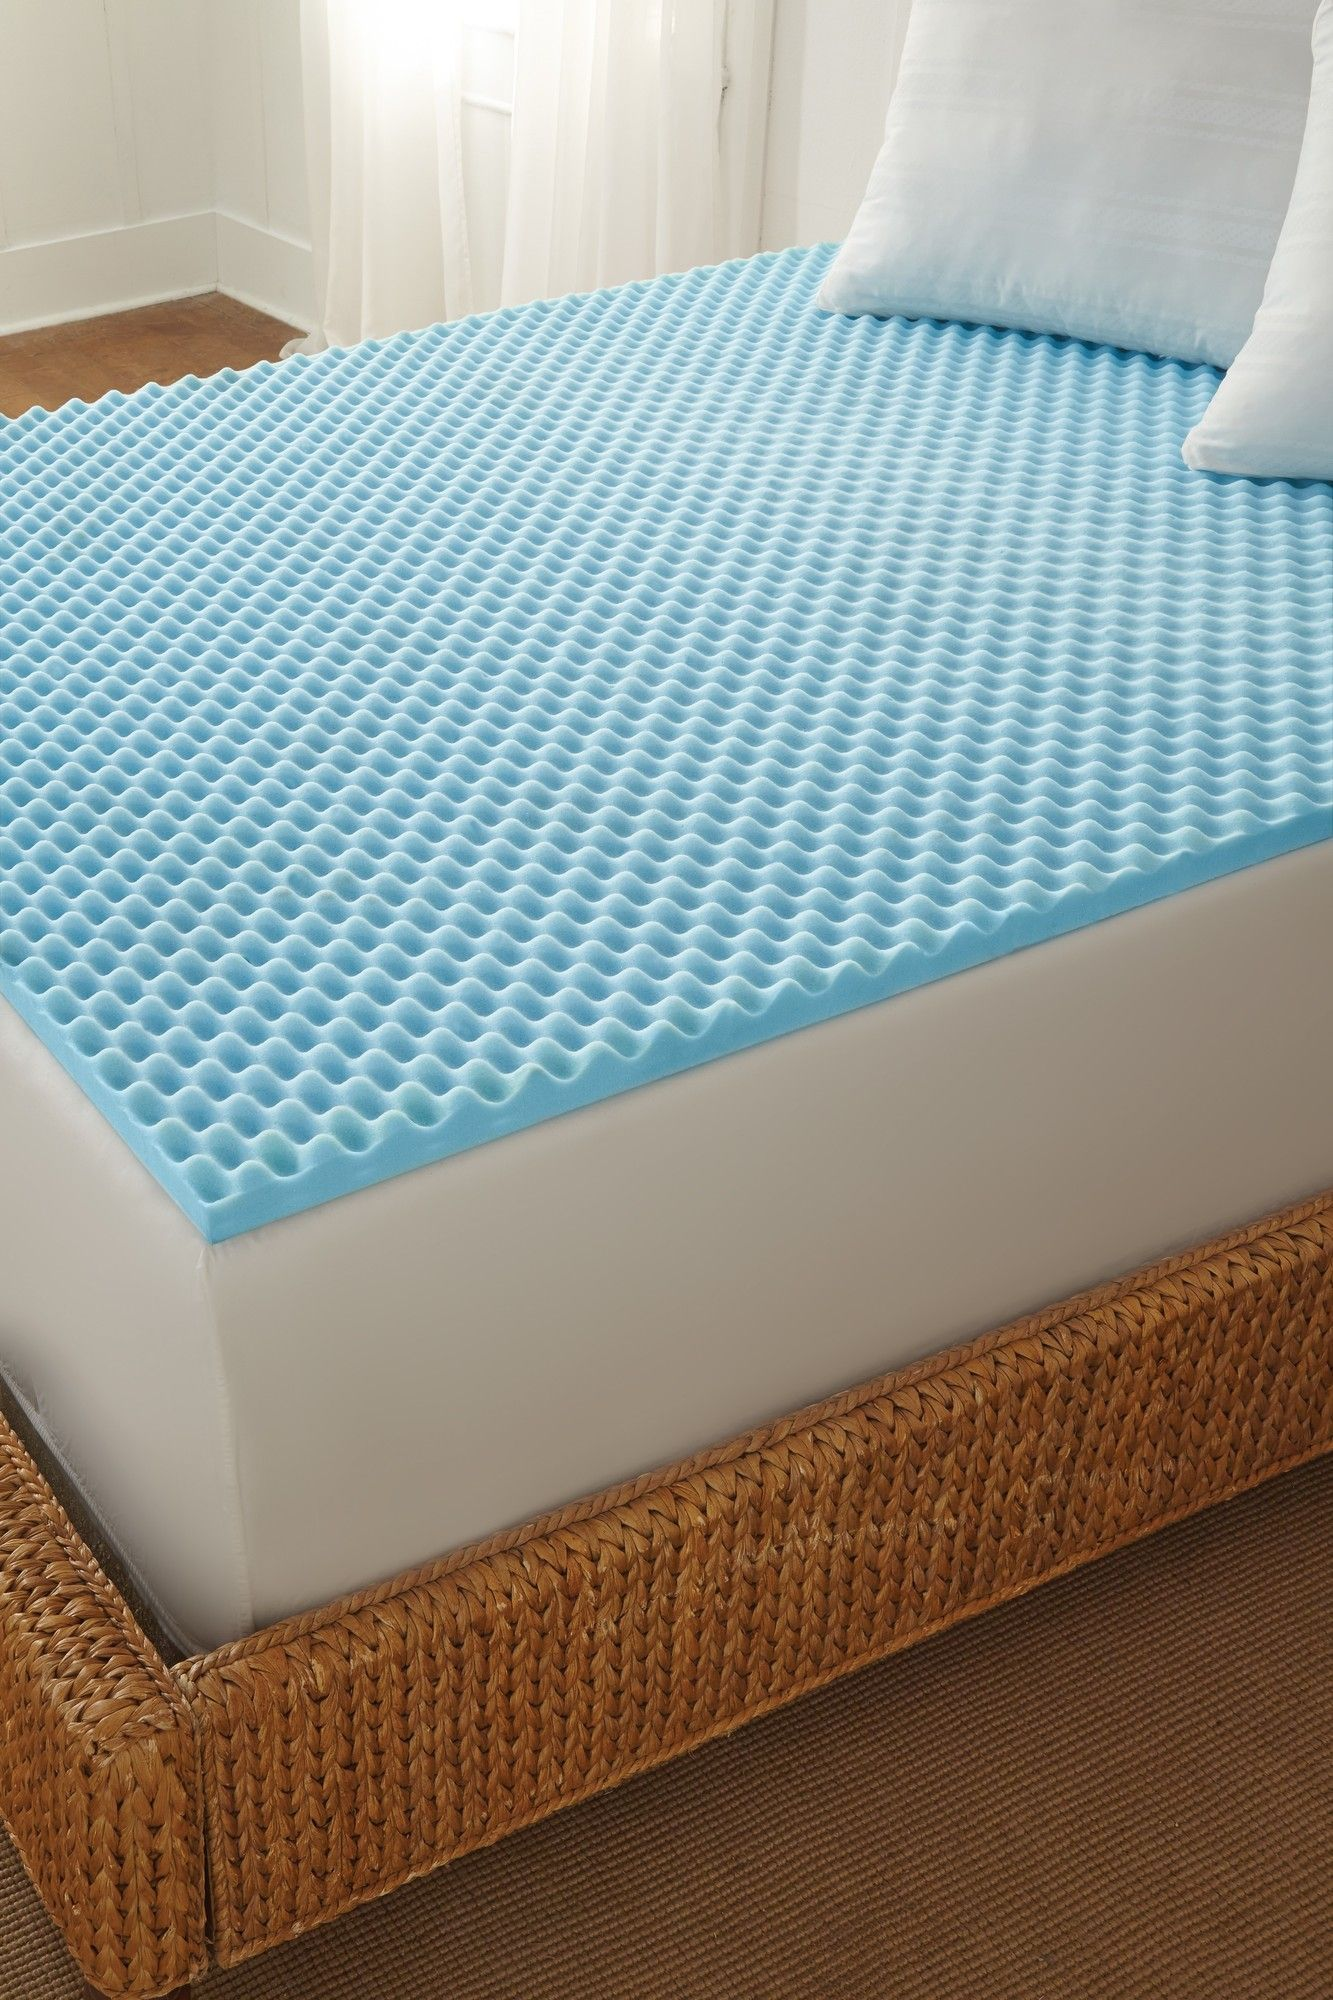 Pin By Jodie Coleman On Pin It Pinterest Mattress Mattress Pad